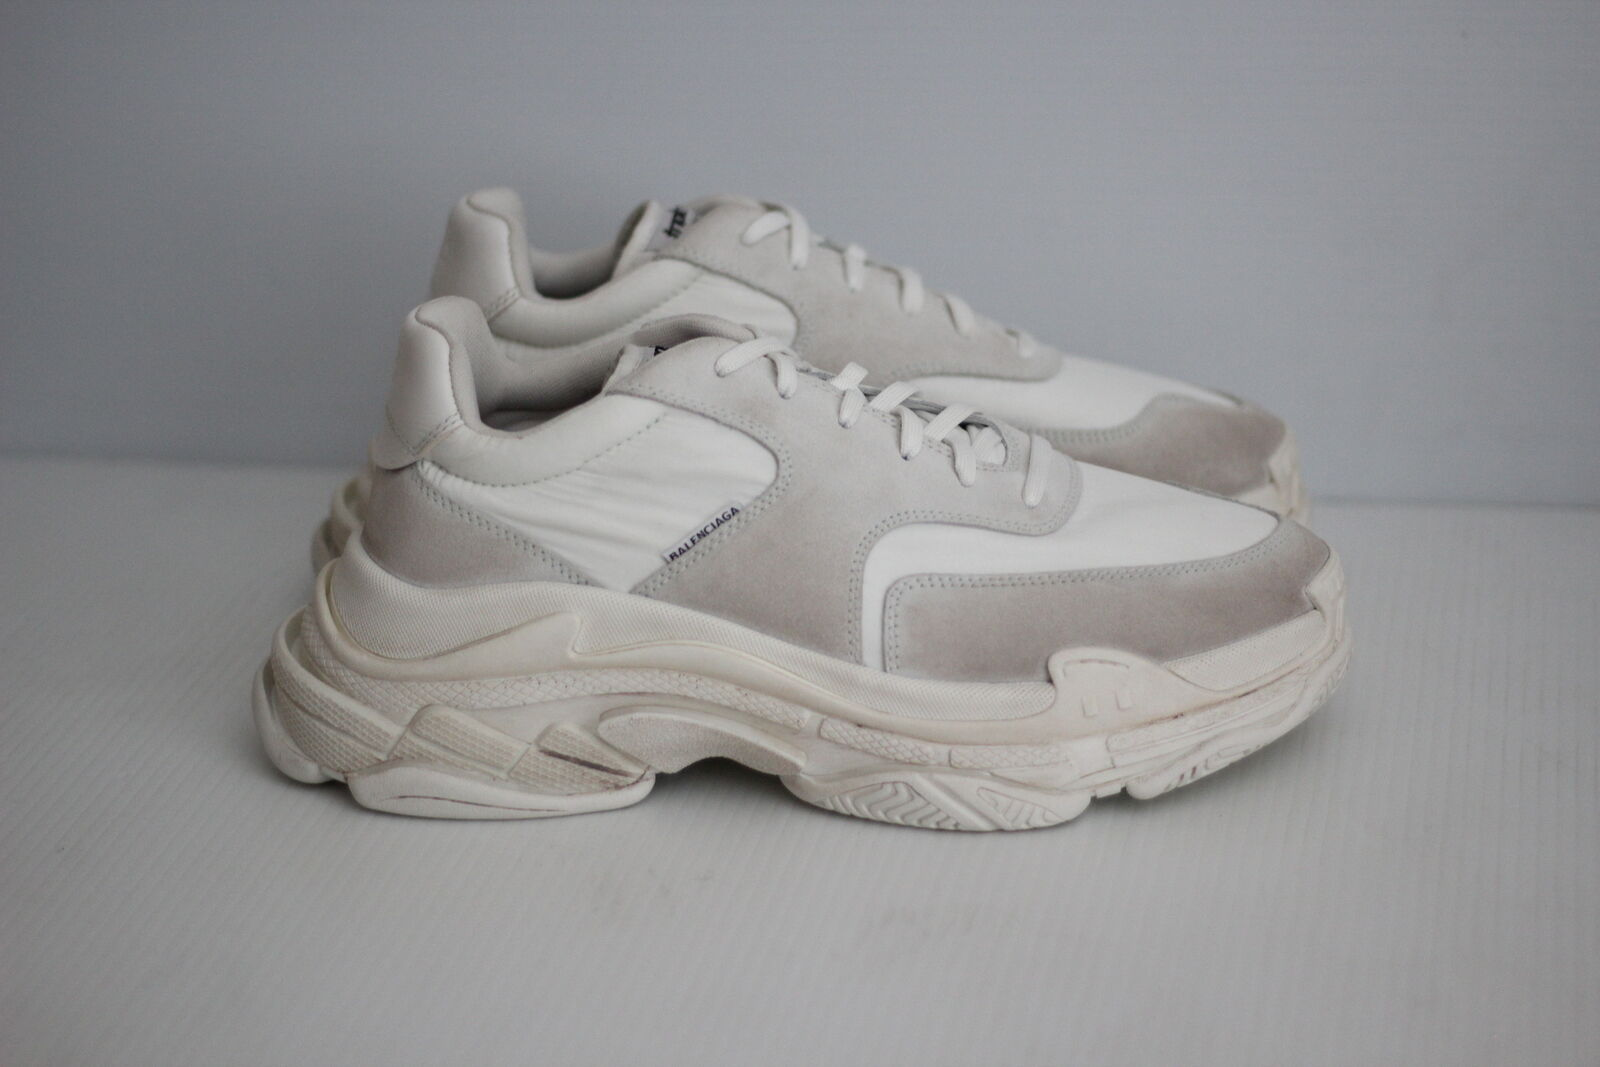 Authentic Balenciaga 2018 TrIple S Sneakers Trainers - Blanc White - 11US / 44